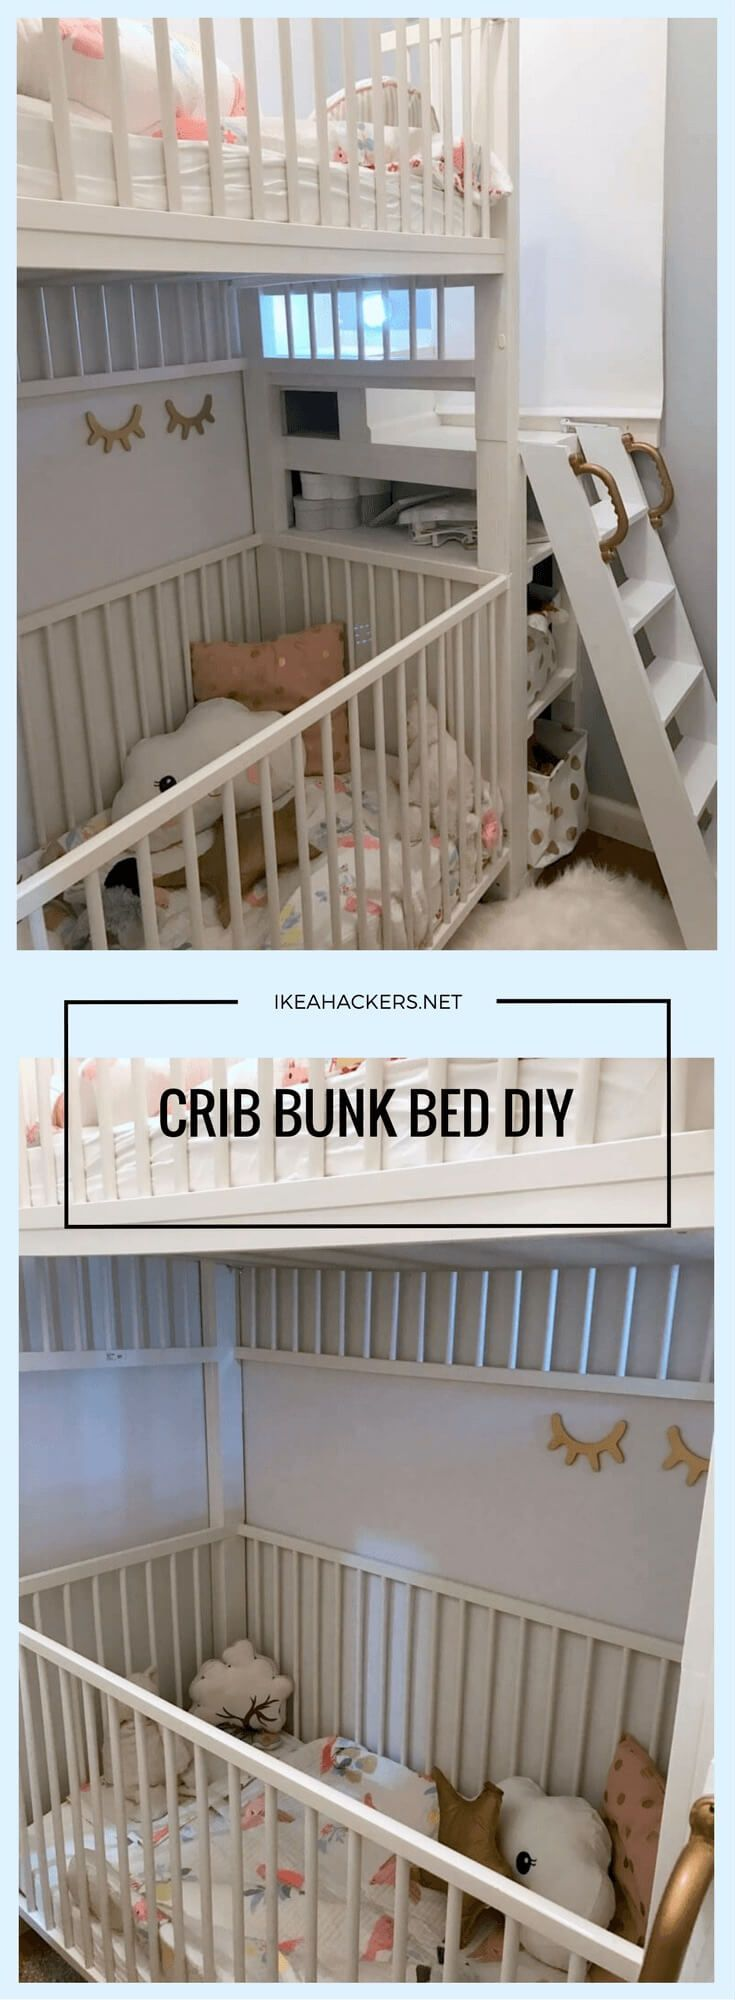 Crib bunk bed hacked from IKEA GULLIVER cots http://www.ikeahackers.net/2017/06/crib-bunk-bed-hacked-ikea-gulliver-cots.html